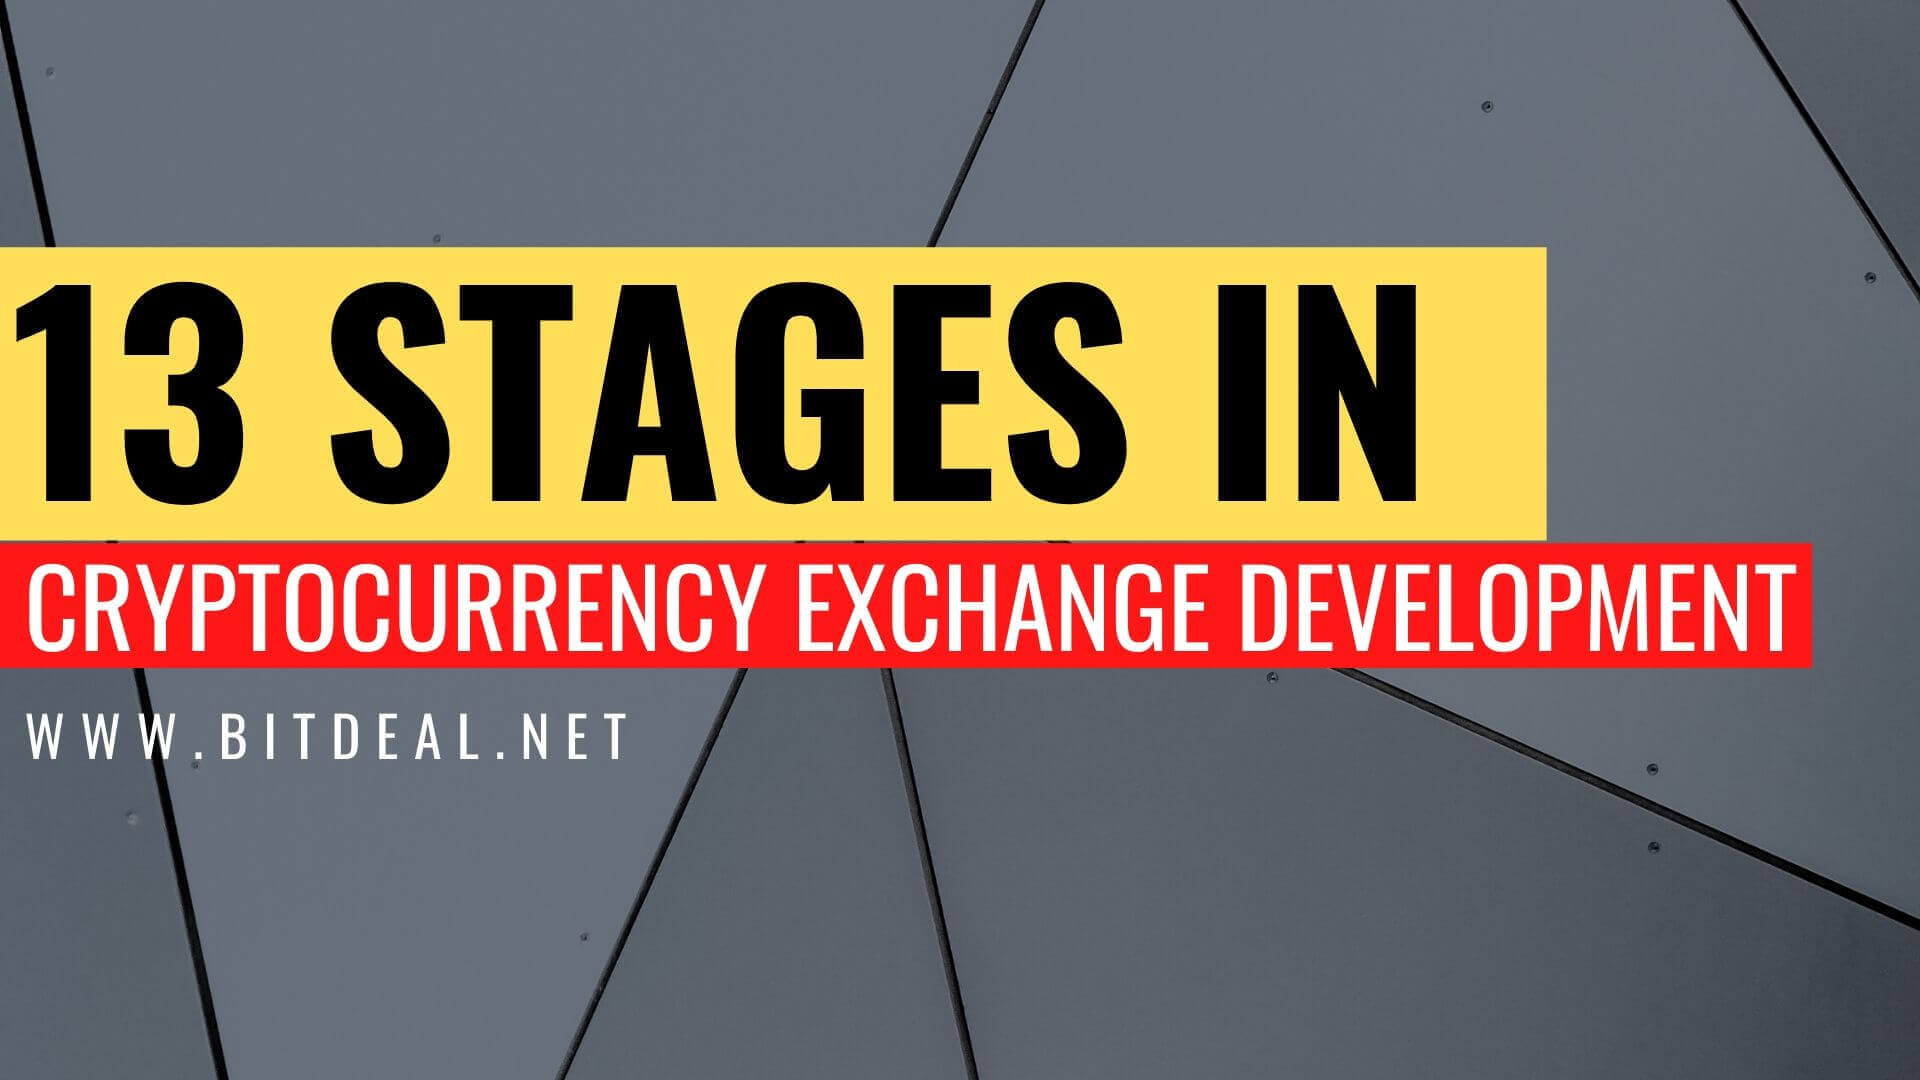 The 13 Stages Of Cryptocurrency Exchange Development Process